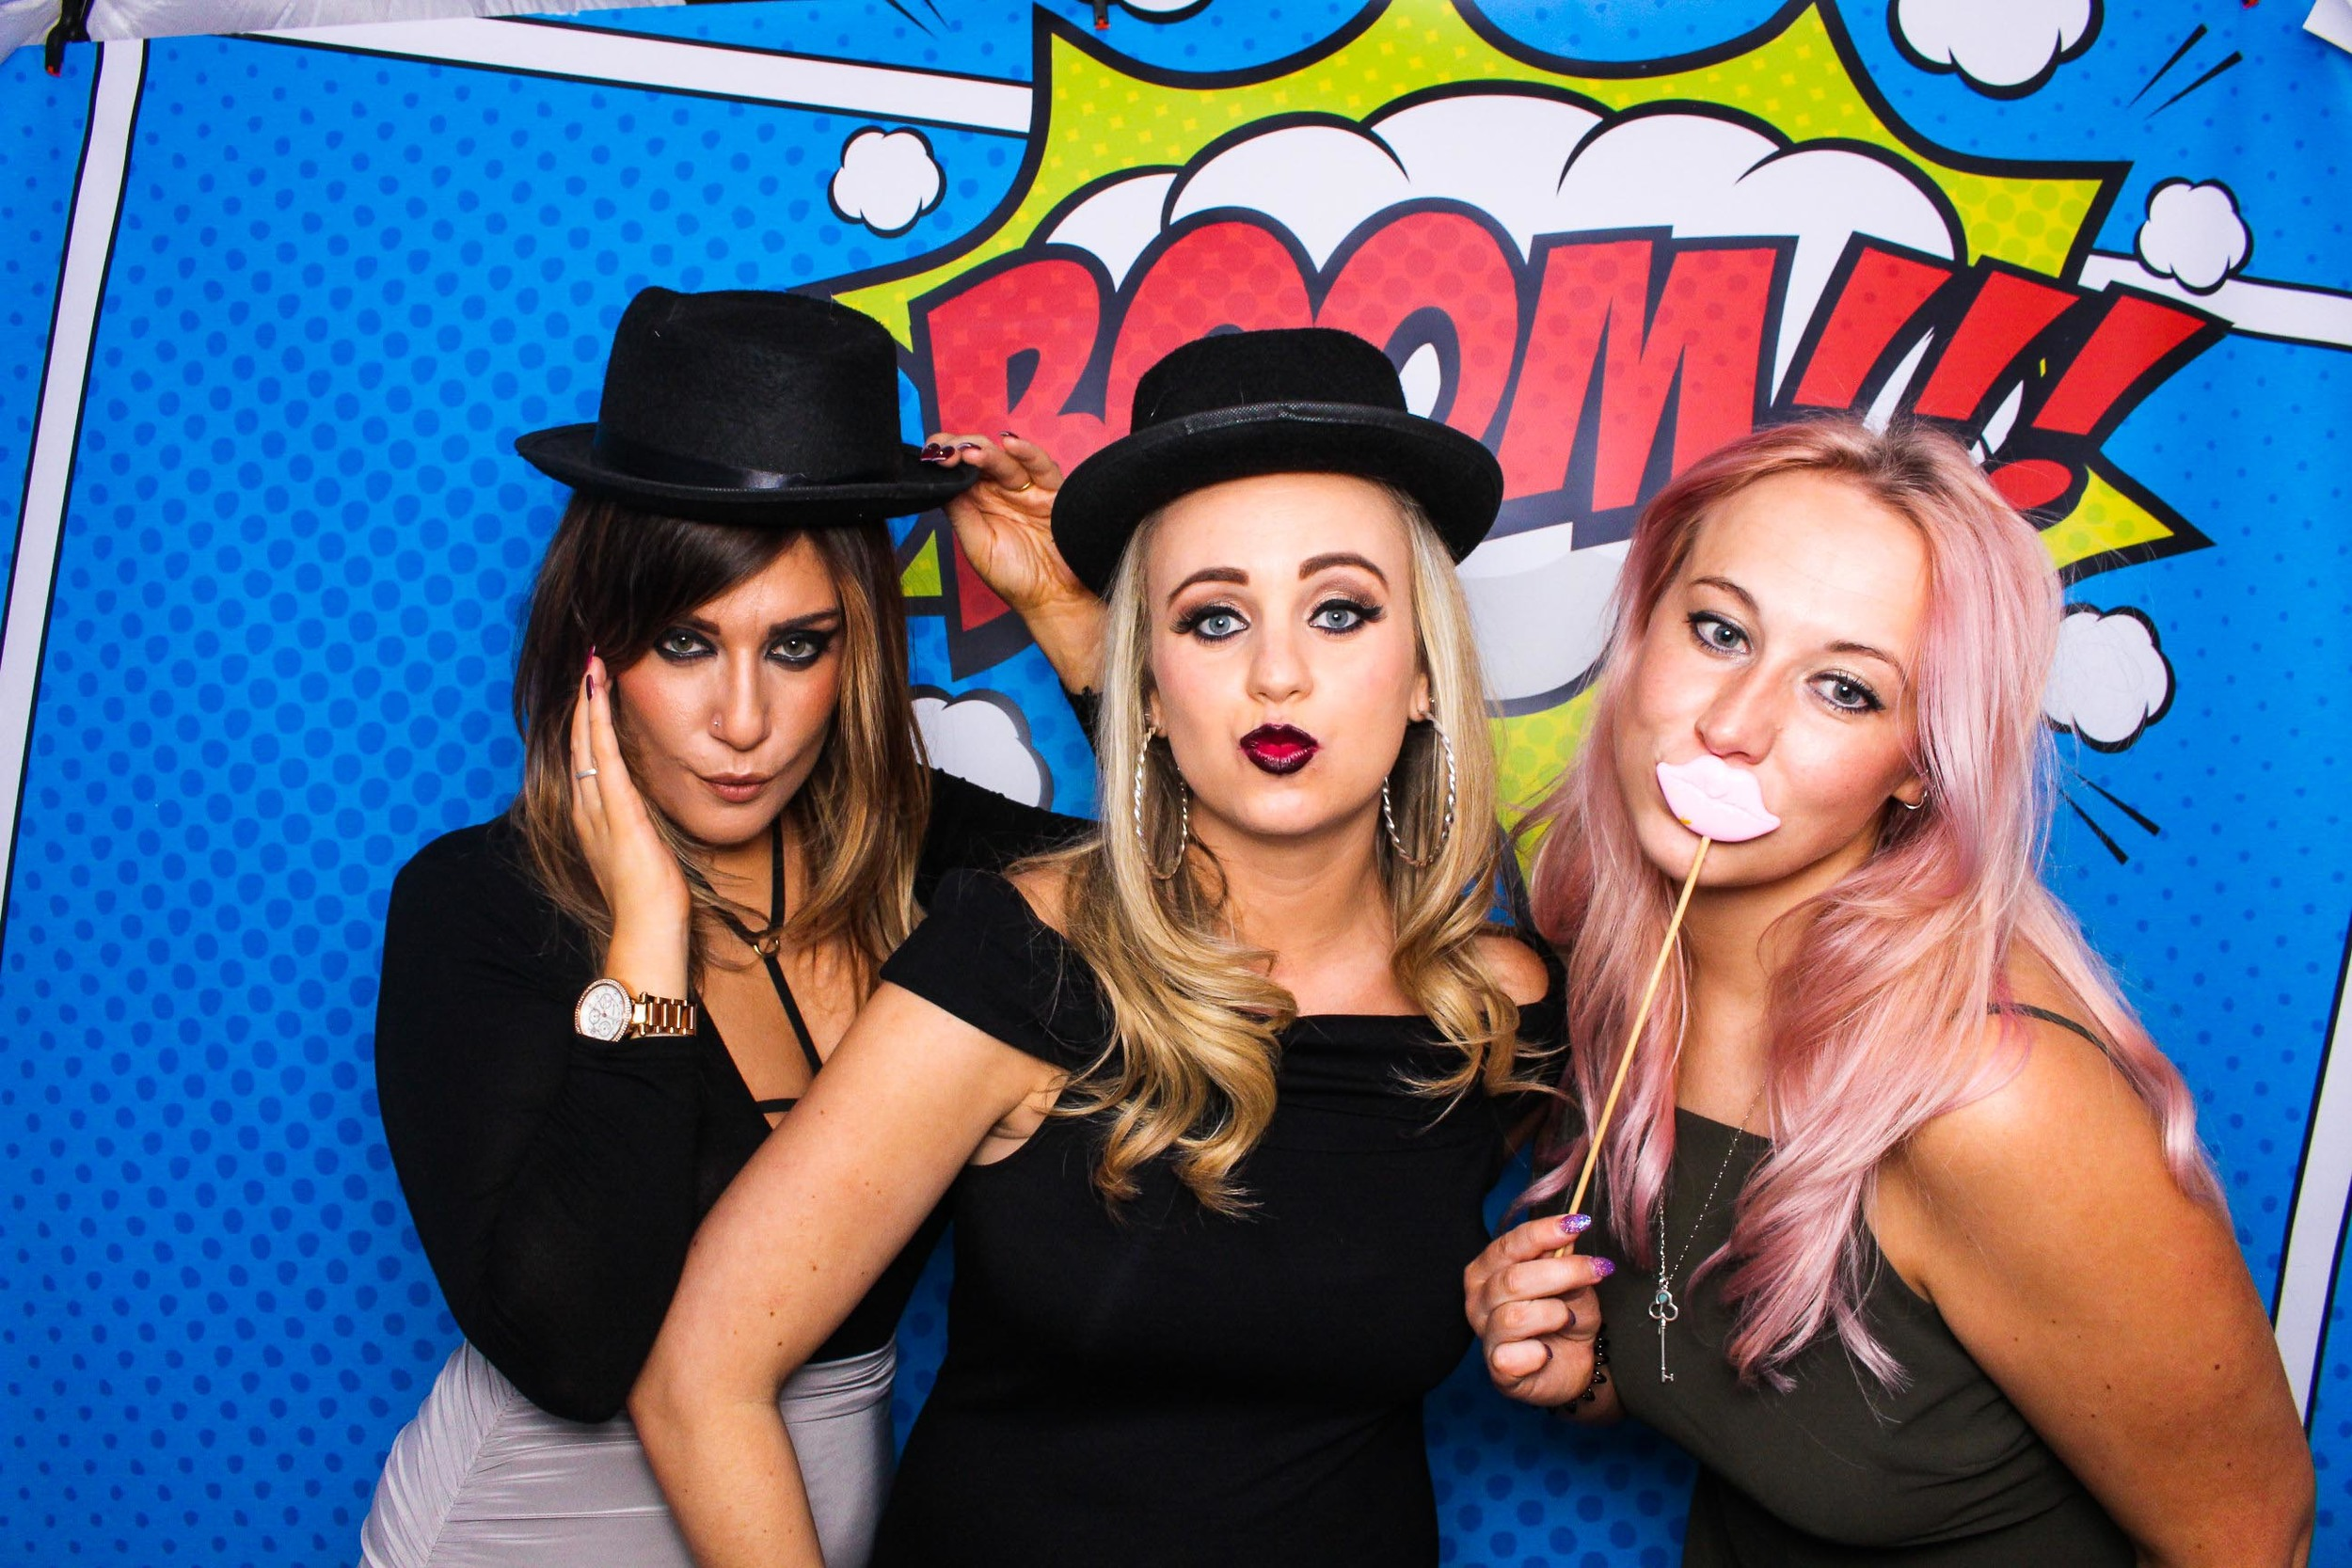 Fotoauto Photo Booth Hire - Shop Direct-82.jpg